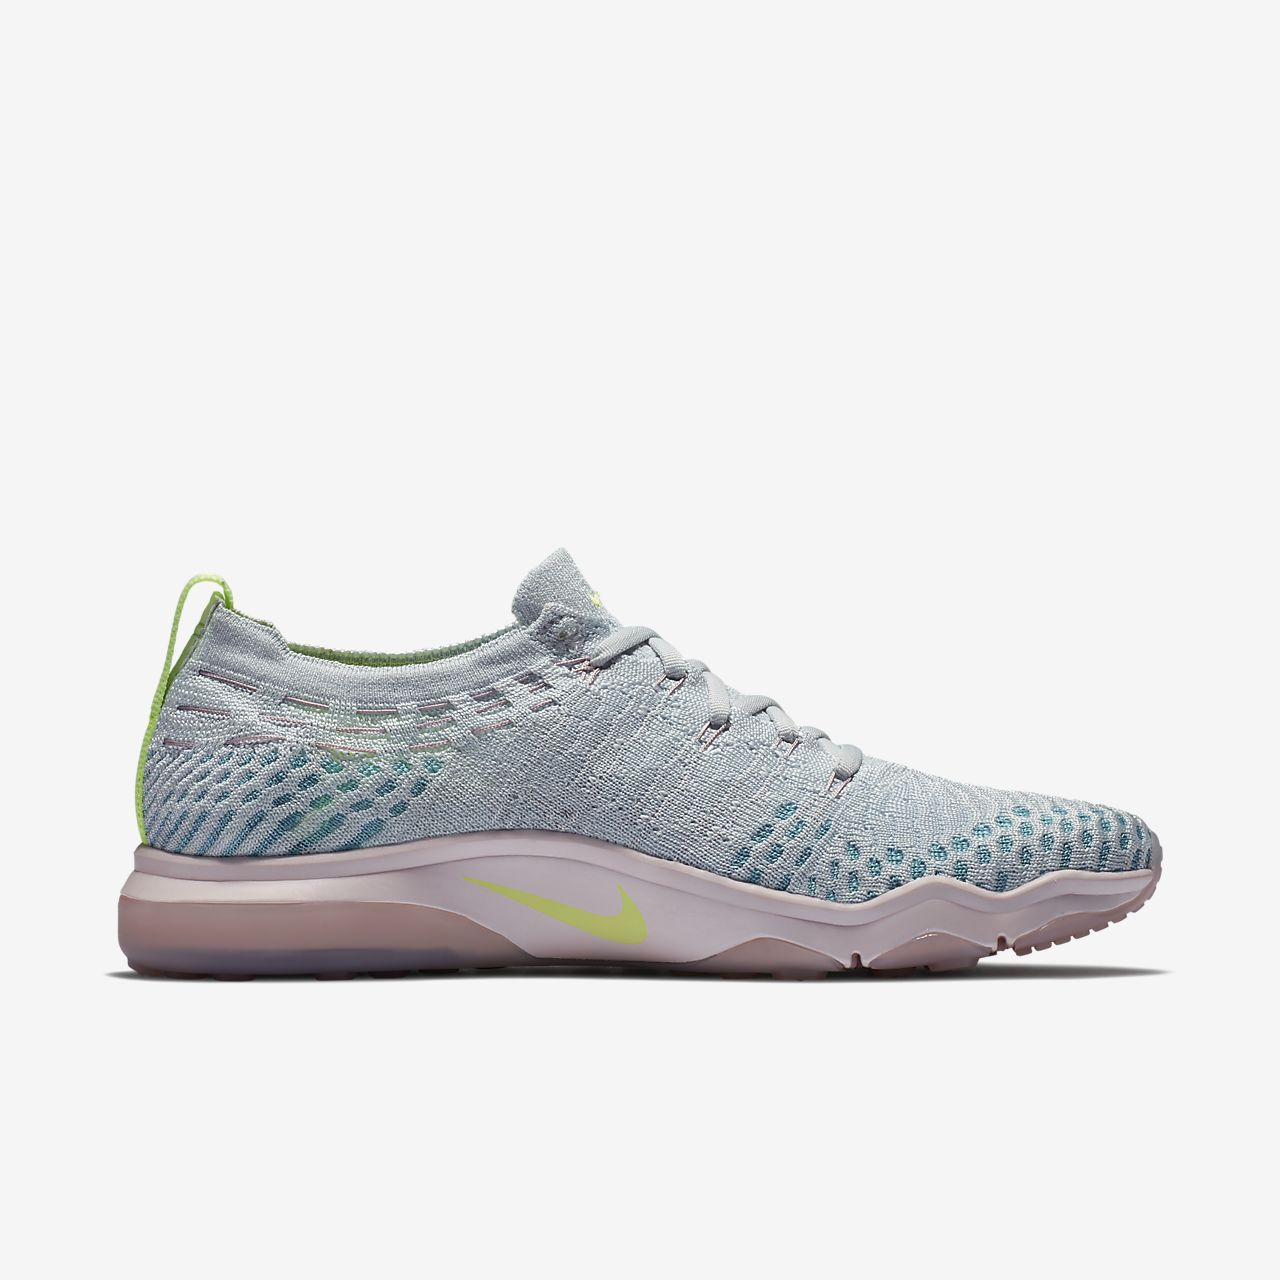 ... Nike Air Zoom Fearless Flyknit Lux Damen-Trainingsschuh